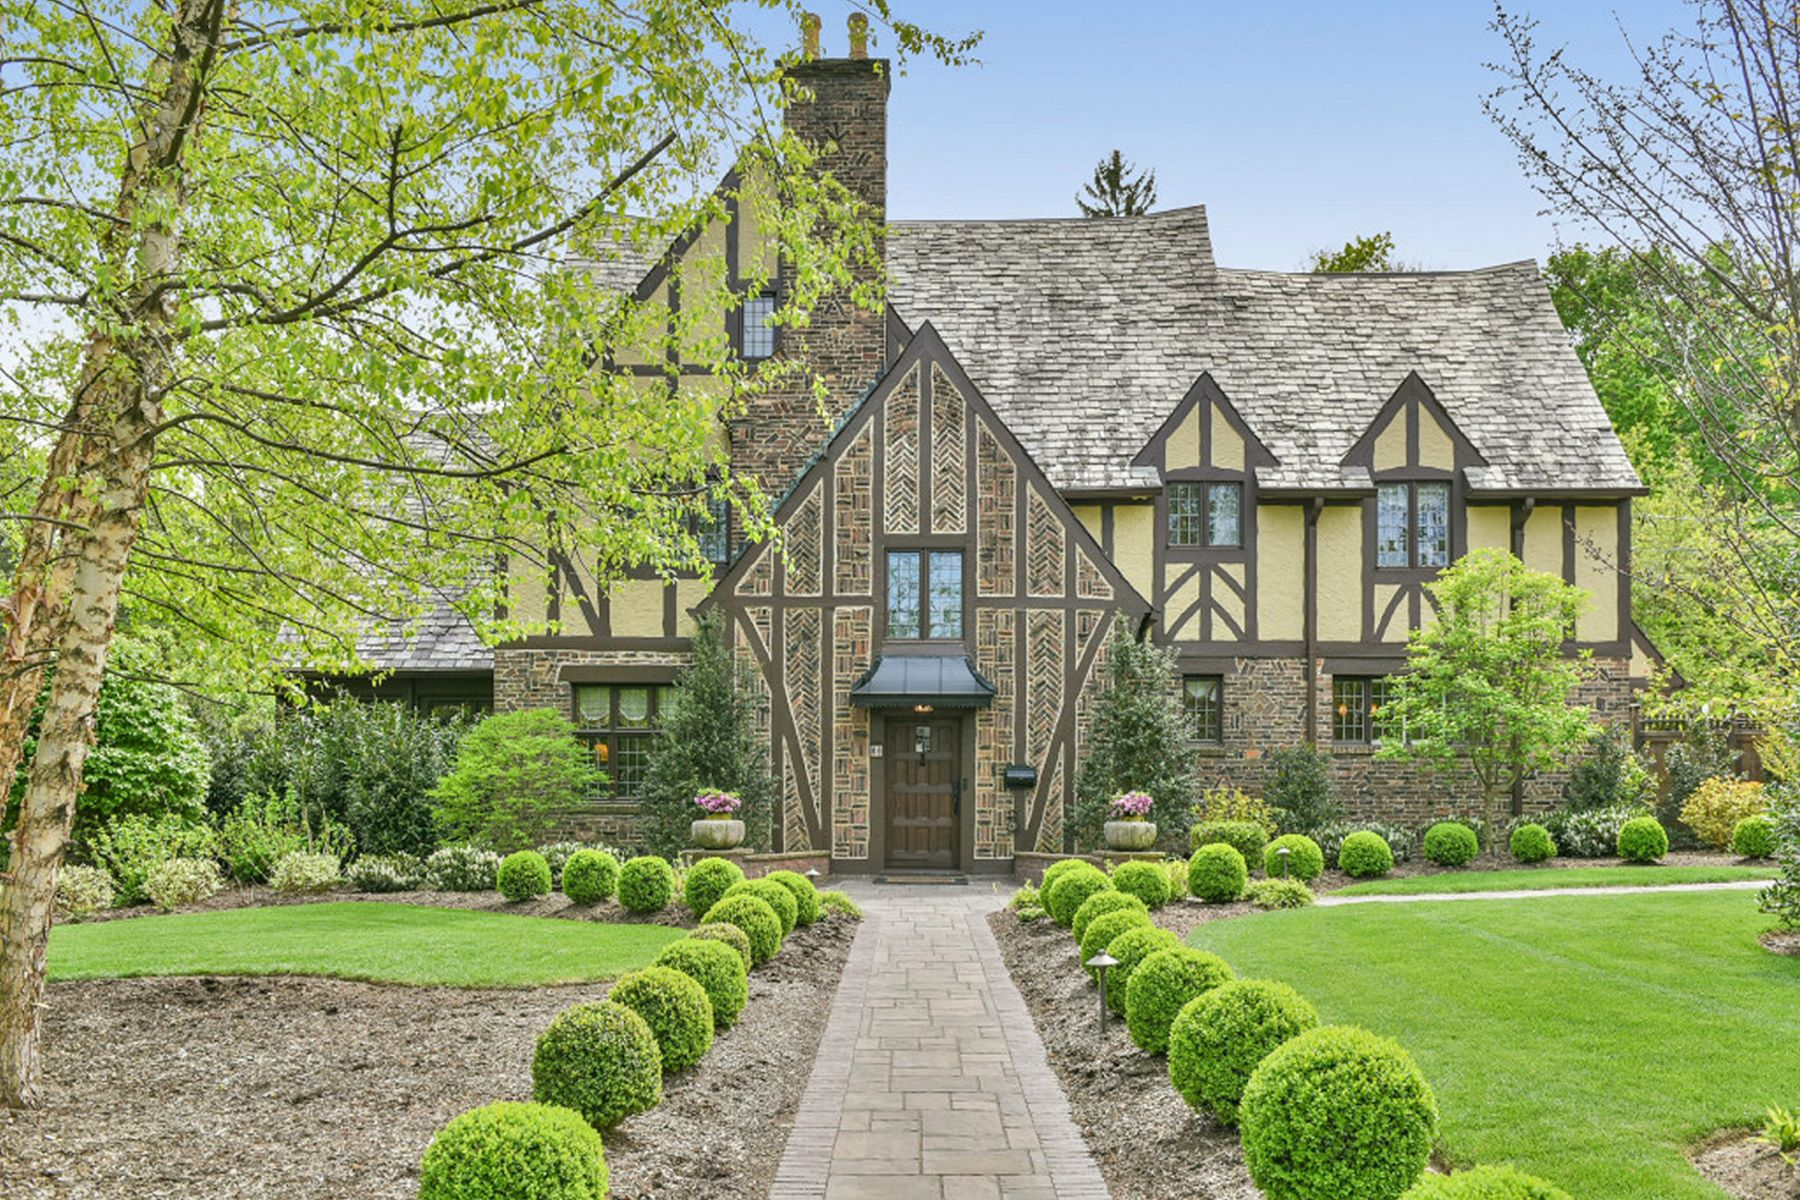 Single Family Home for Sale at Elegant, Charming Tudor 86 Warren Place Montclair, New Jersey 07042 United States